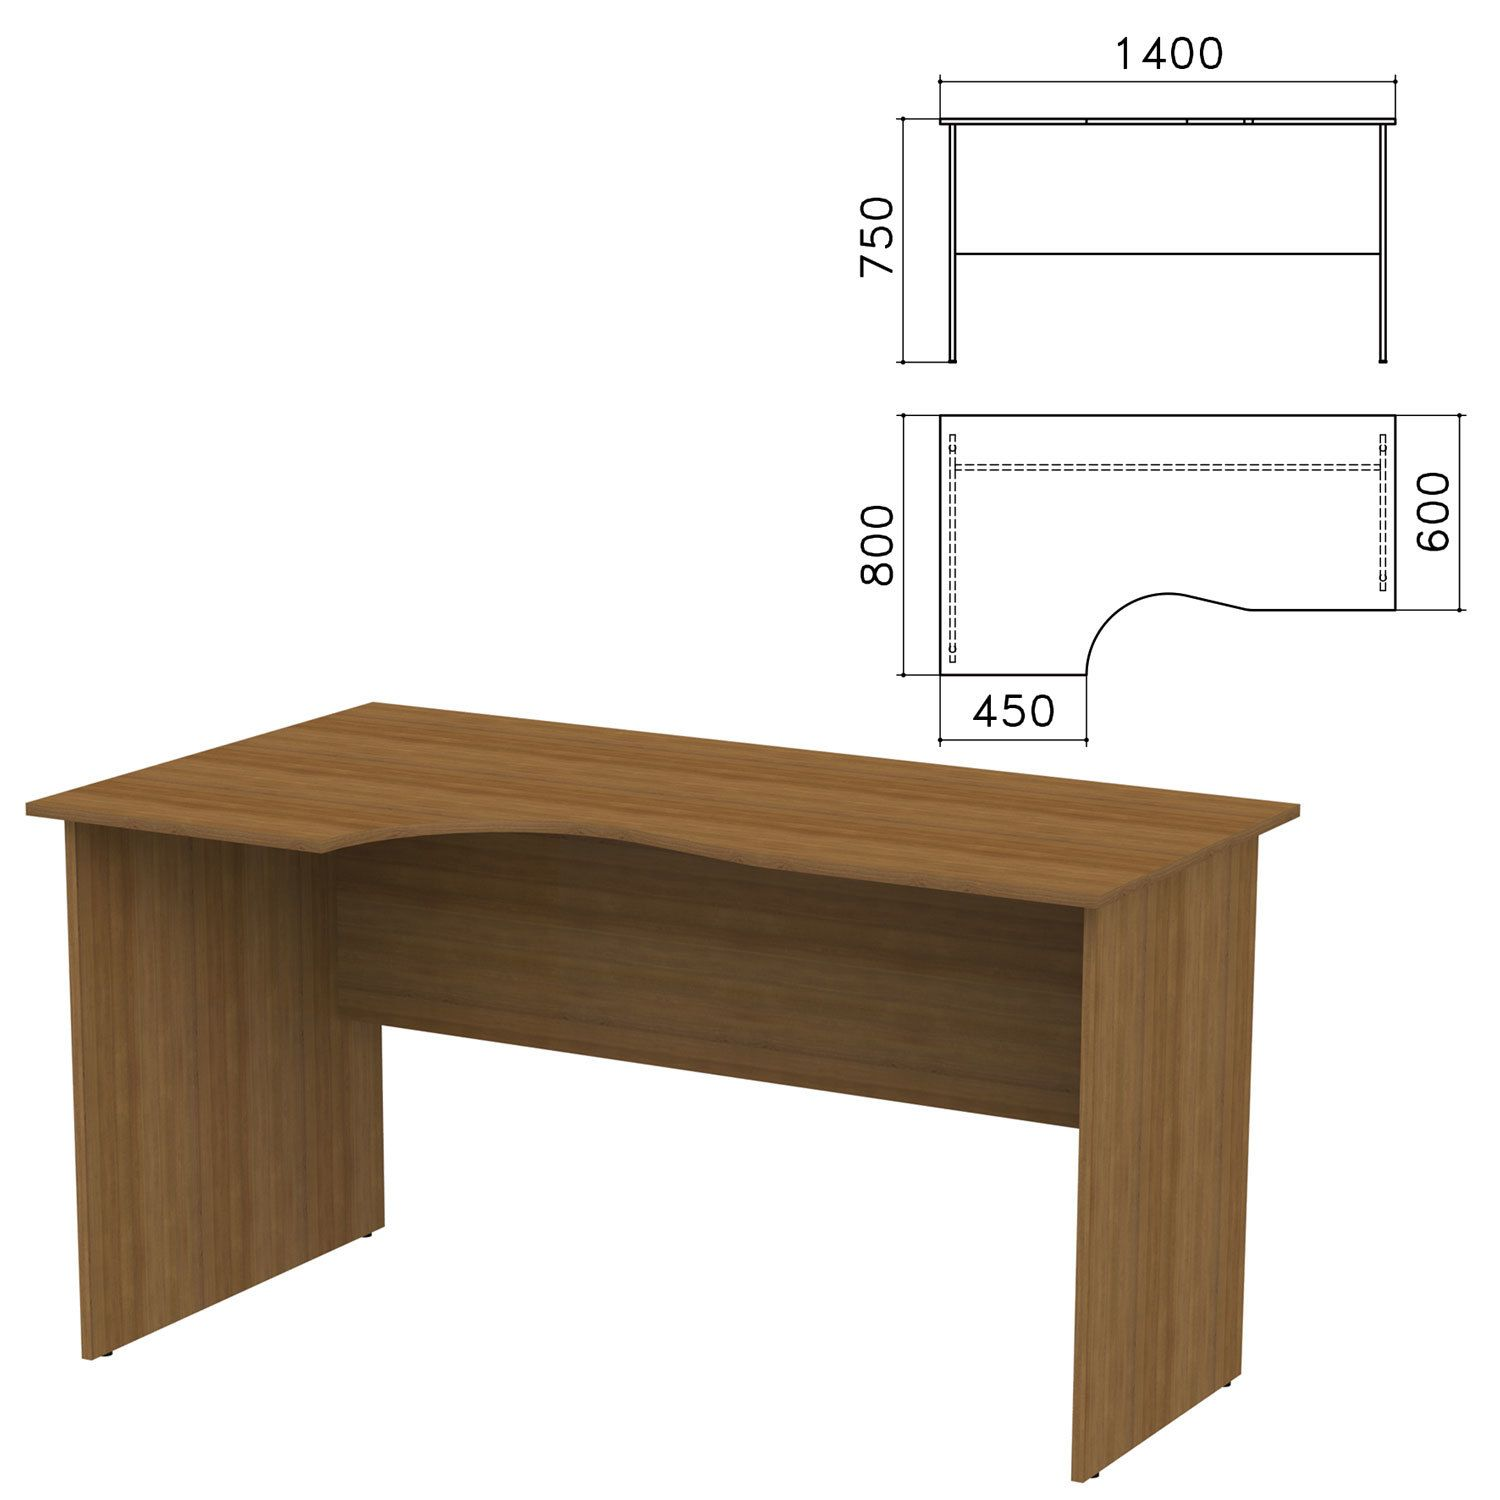 "Table written ergonomic ""Kanz,"" 1400 x800s750 mm, left, walnut pyramidal color"